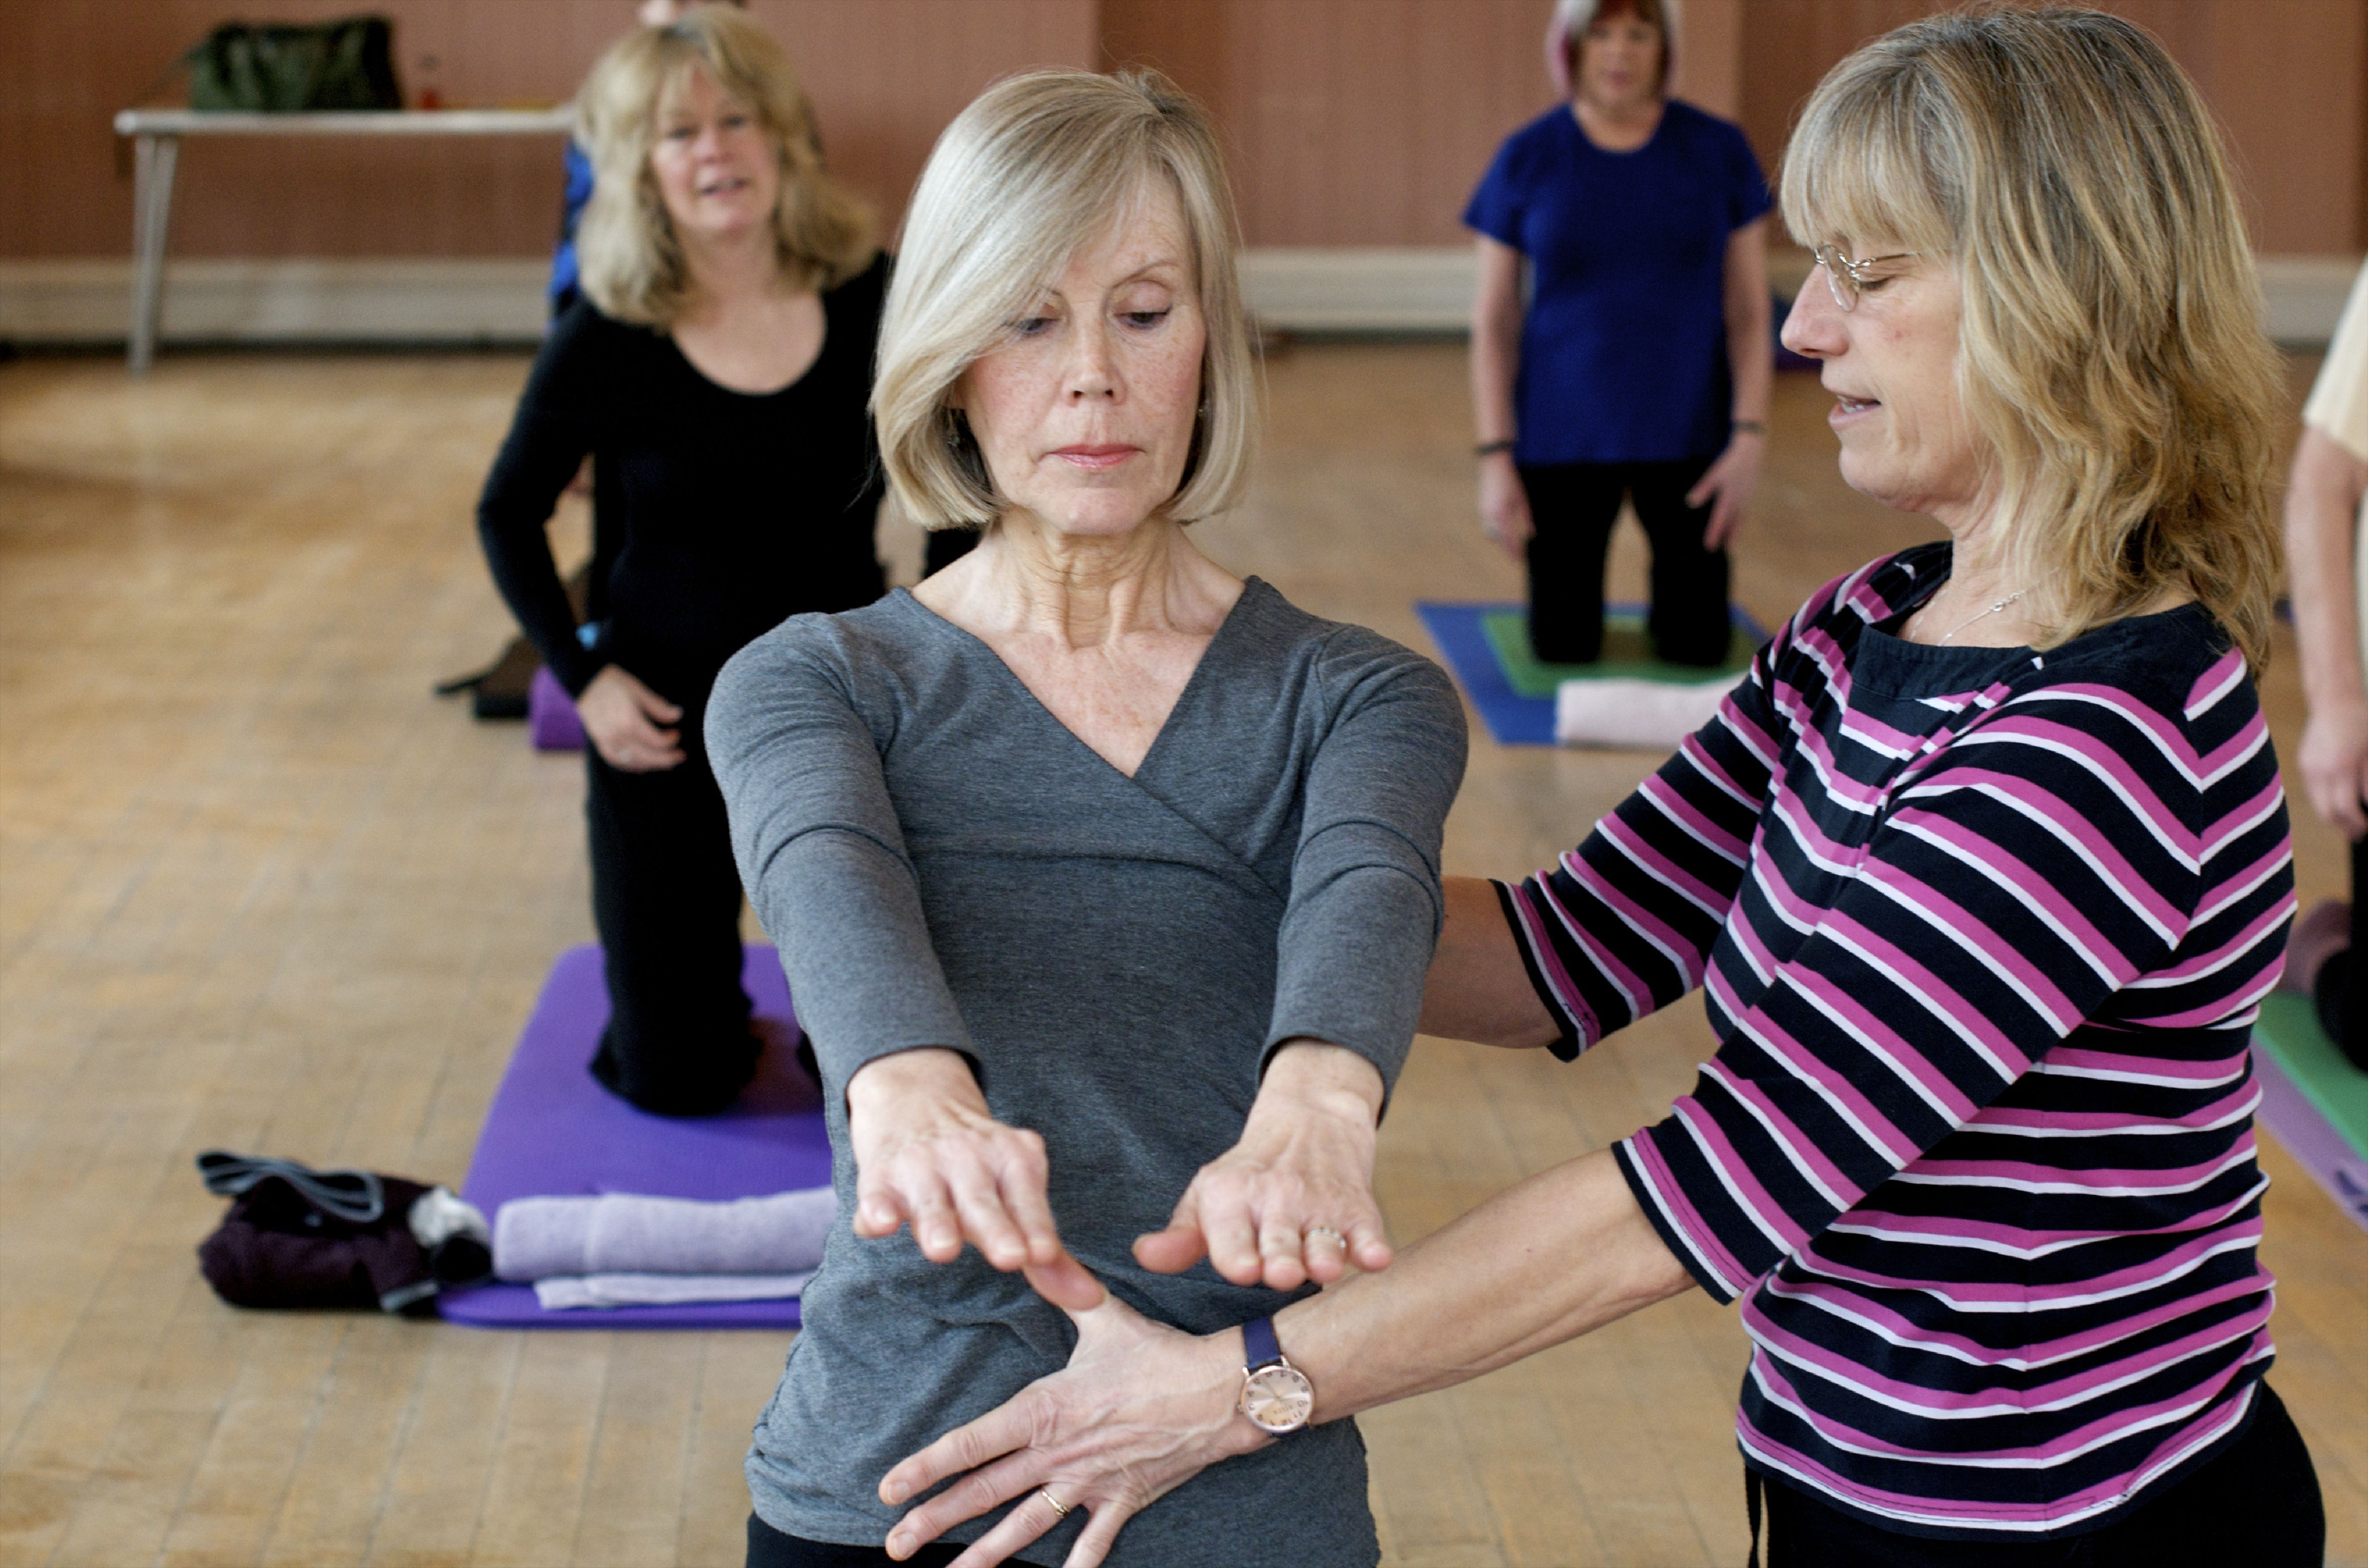 Pilates Courses at Shipley College #pilatescourses Pilates Courses at Shipley College #pilatescourses